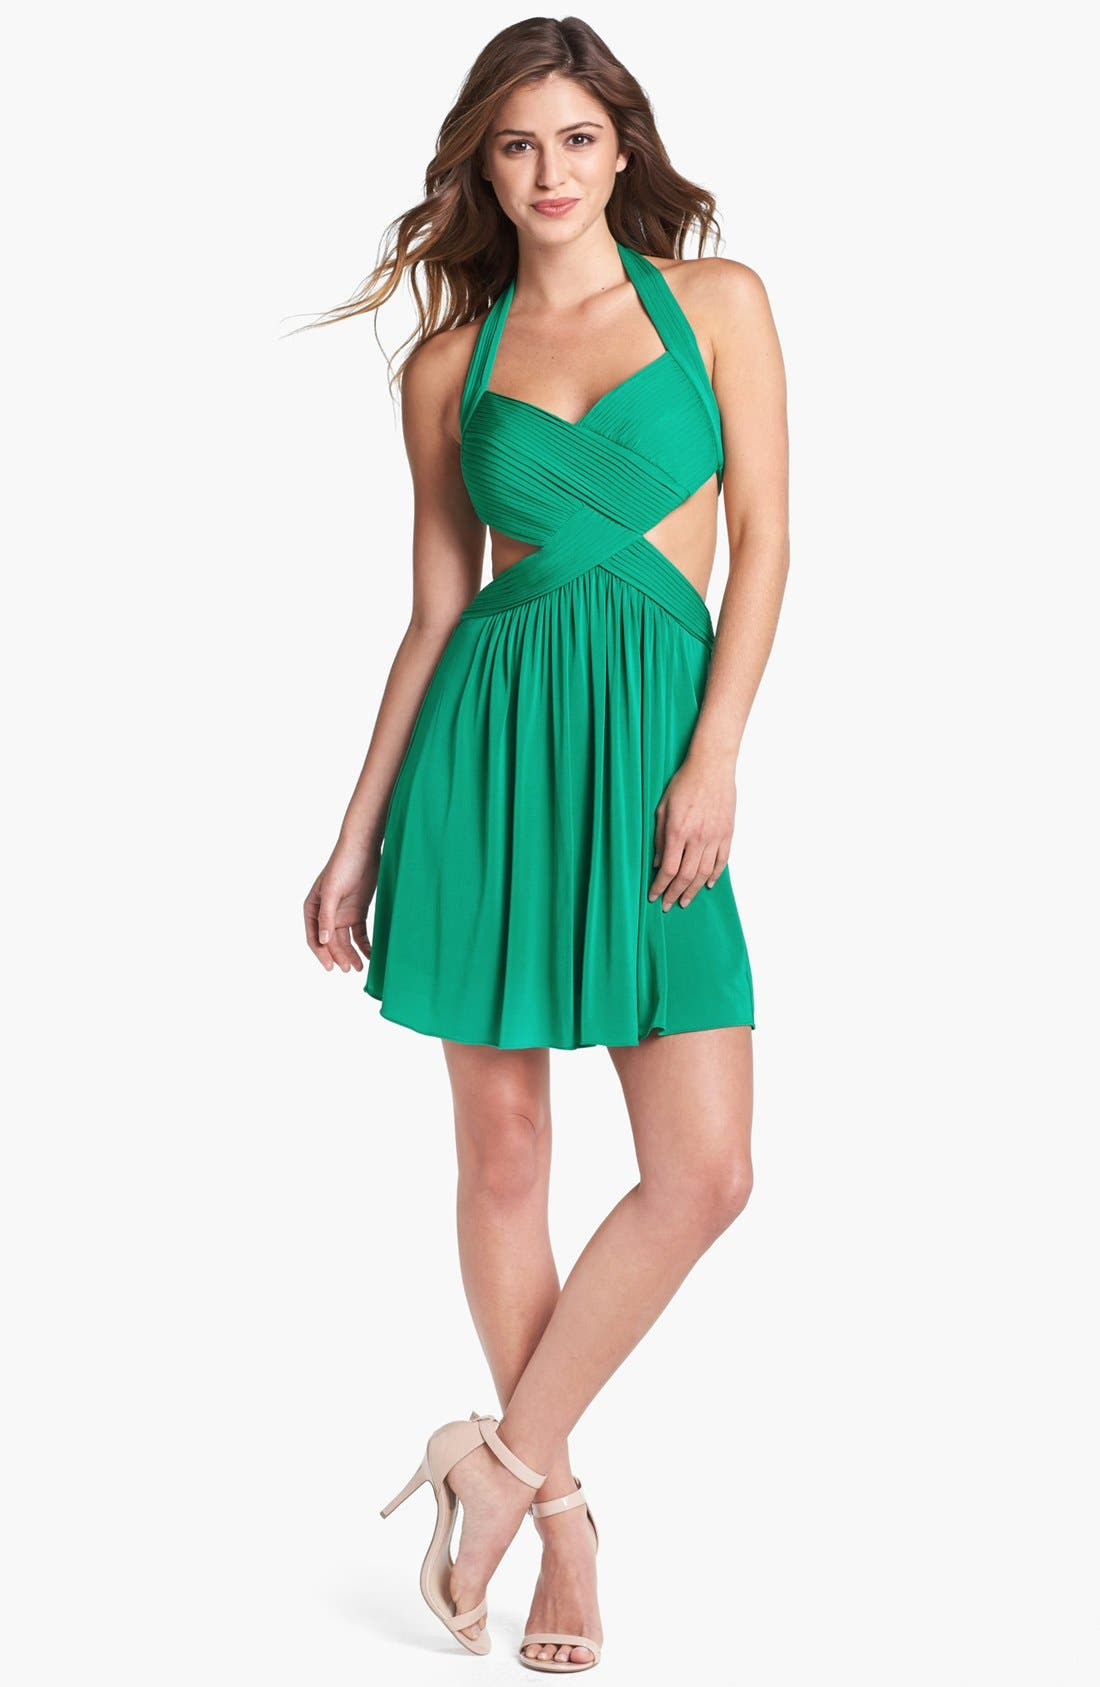 Alternate Image 1 Selected - BCBGMAXAZRIA 'Shea' Cutout Halter Fit & Flare Dress